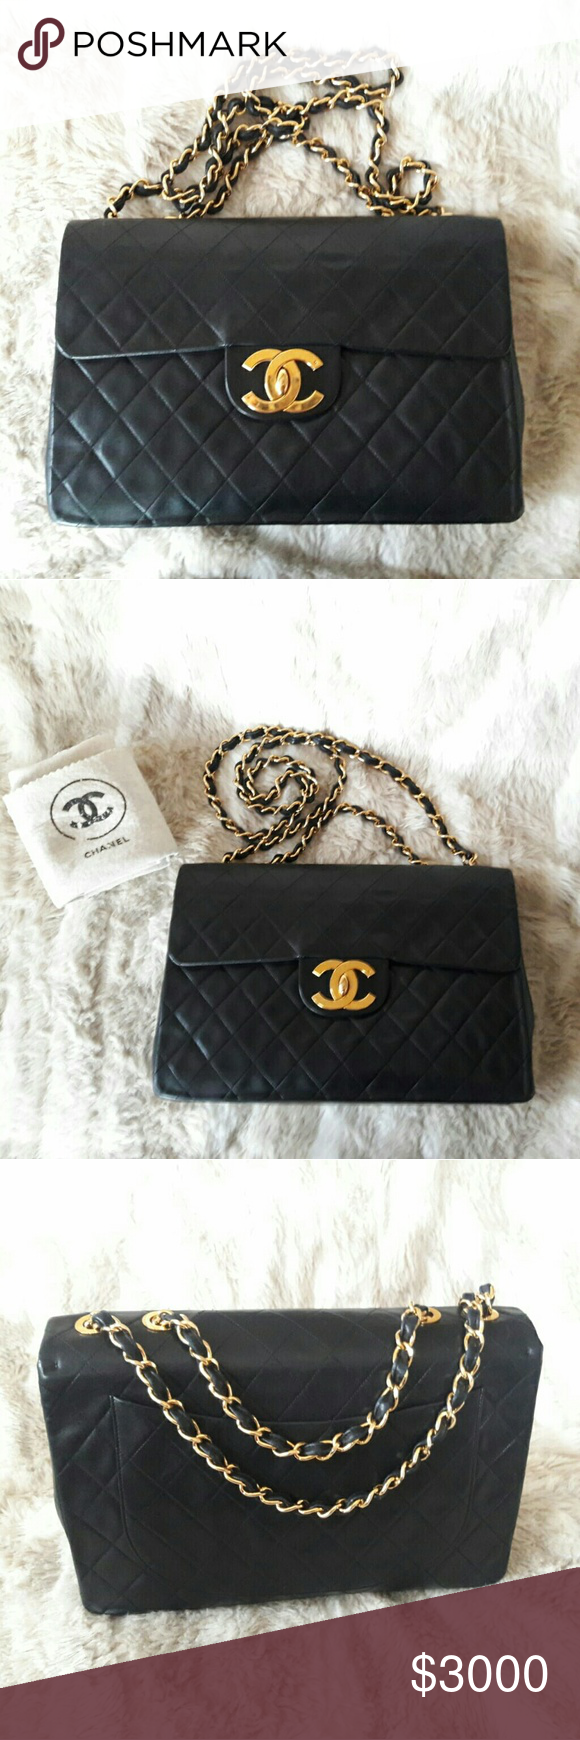 0cc0368cf76d Chanel Vintage XL Jumbo Flap Bag quilted Lambskin 100% Authentic Very Good  Vintage condition Lambskin